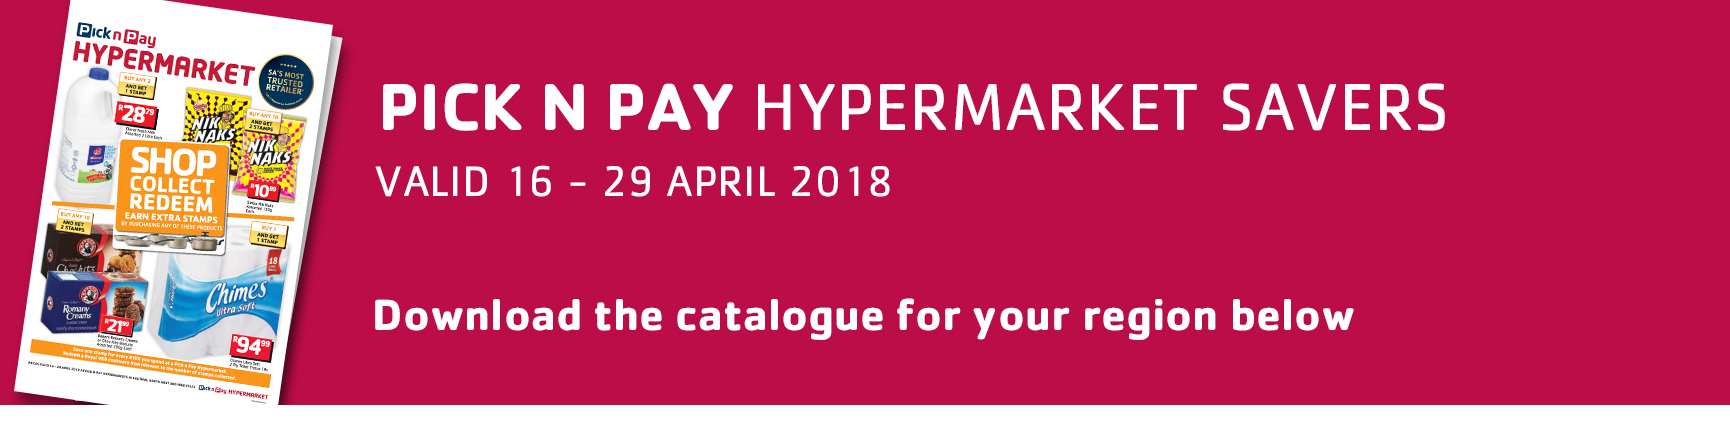 Pick n Pay Hypermarket savers Valid 16 - 29 April 2018.jpg